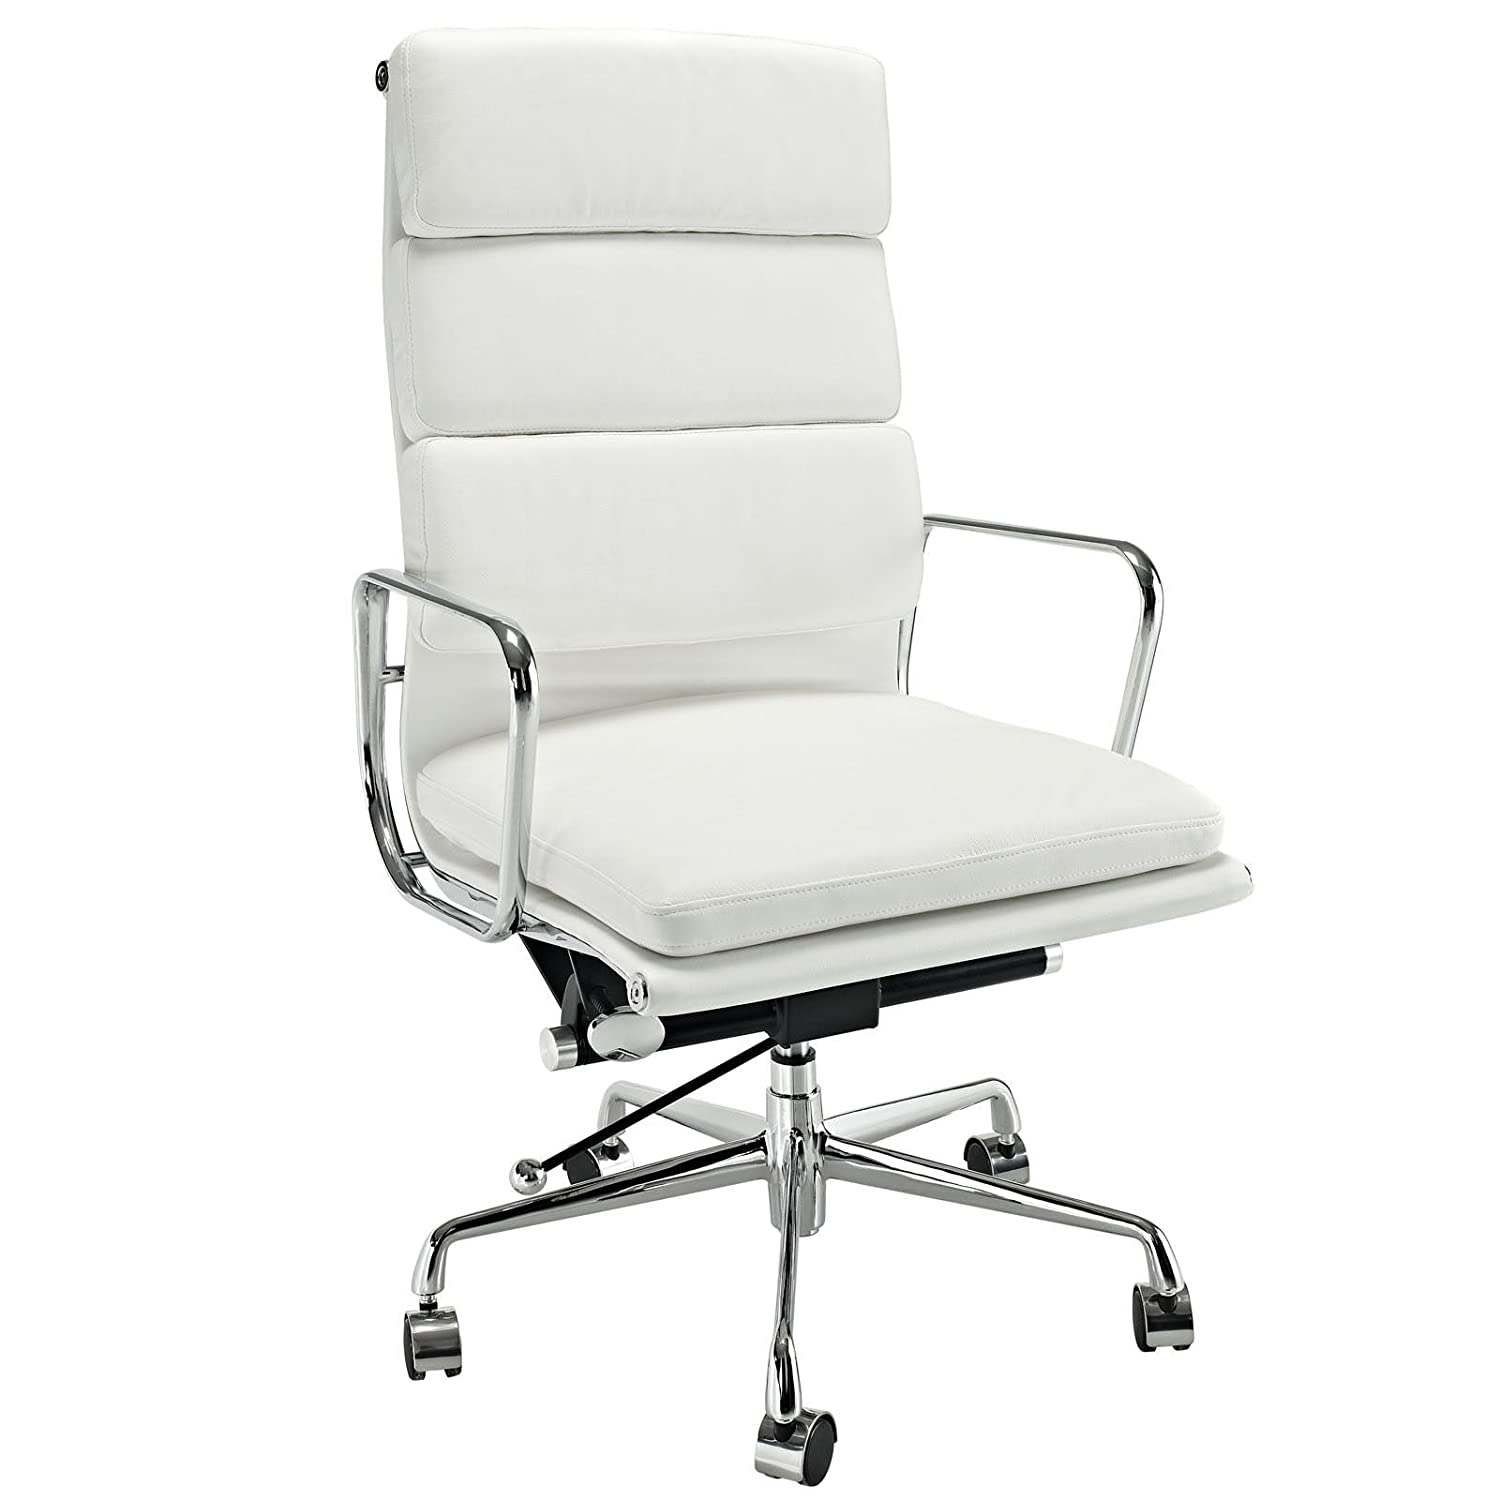 Astonishing Emodern Furniture Emod Eames Style Softpadded Executive Office Chair Reproduction Leather White Forskolin Free Trial Chair Design Images Forskolin Free Trialorg